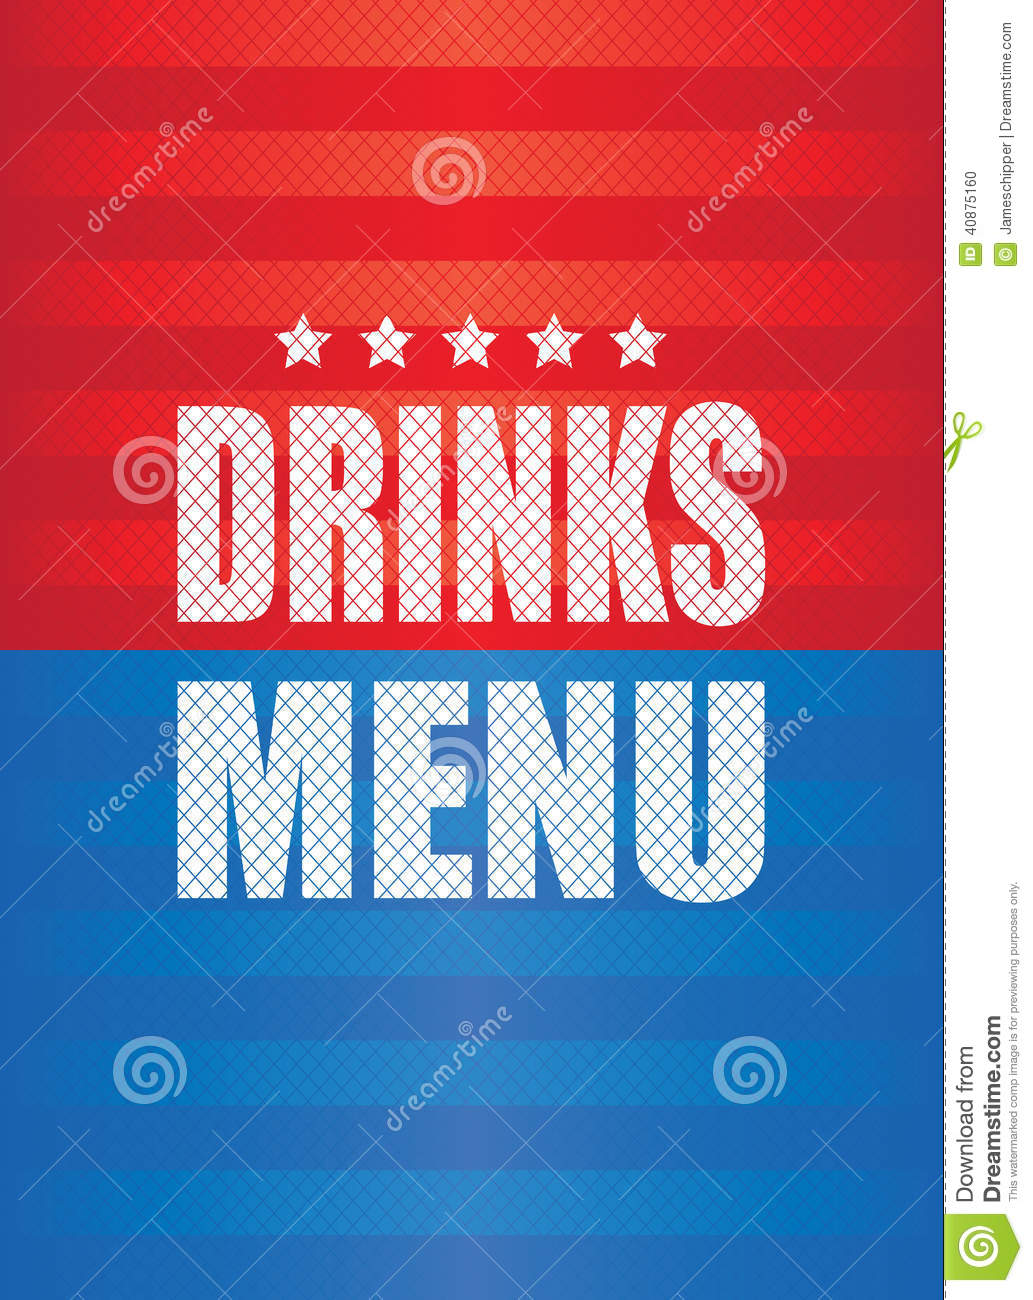 drinks menu background stock vector. illustration of menu - 40875160